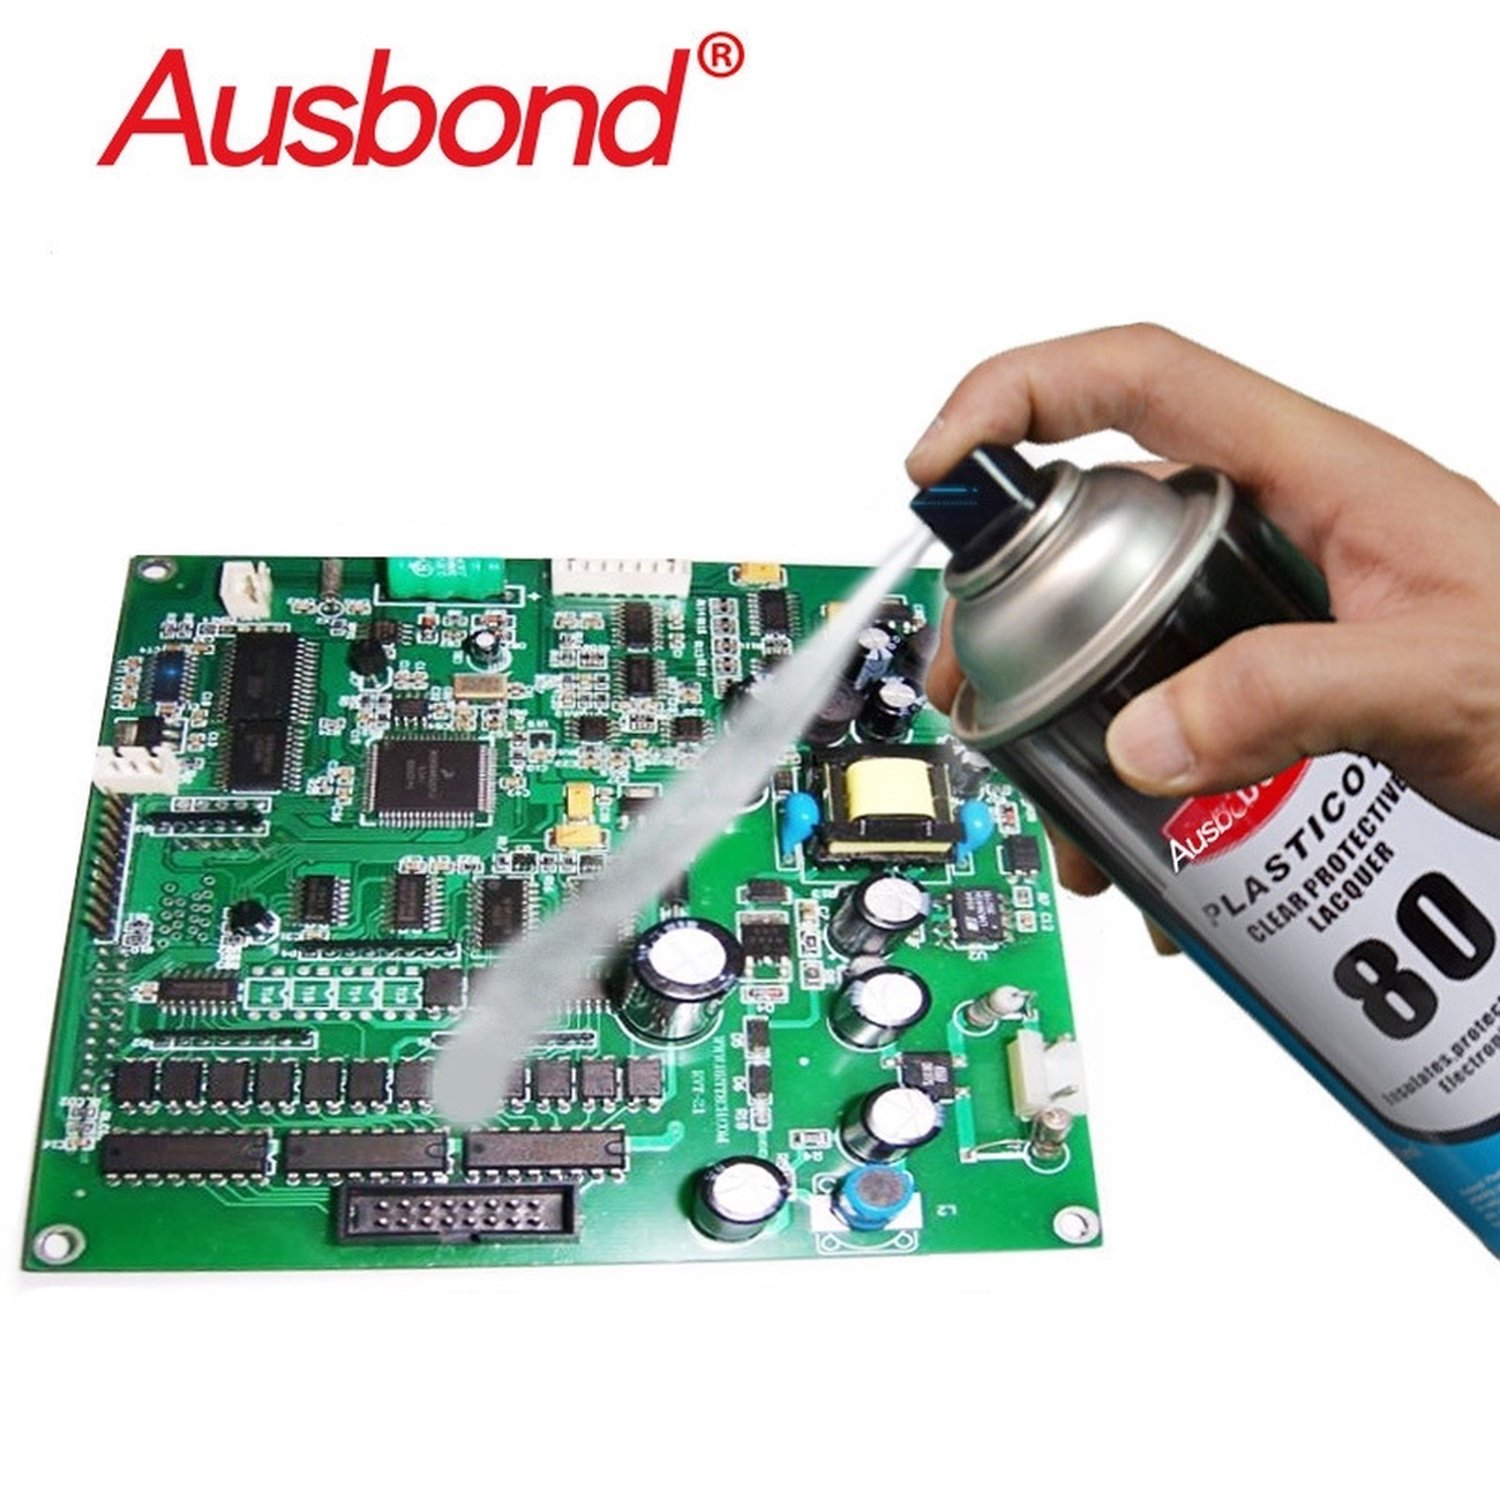 Ausbond®PlastiKote 80 Insulating Protector Spray For PCB Boards